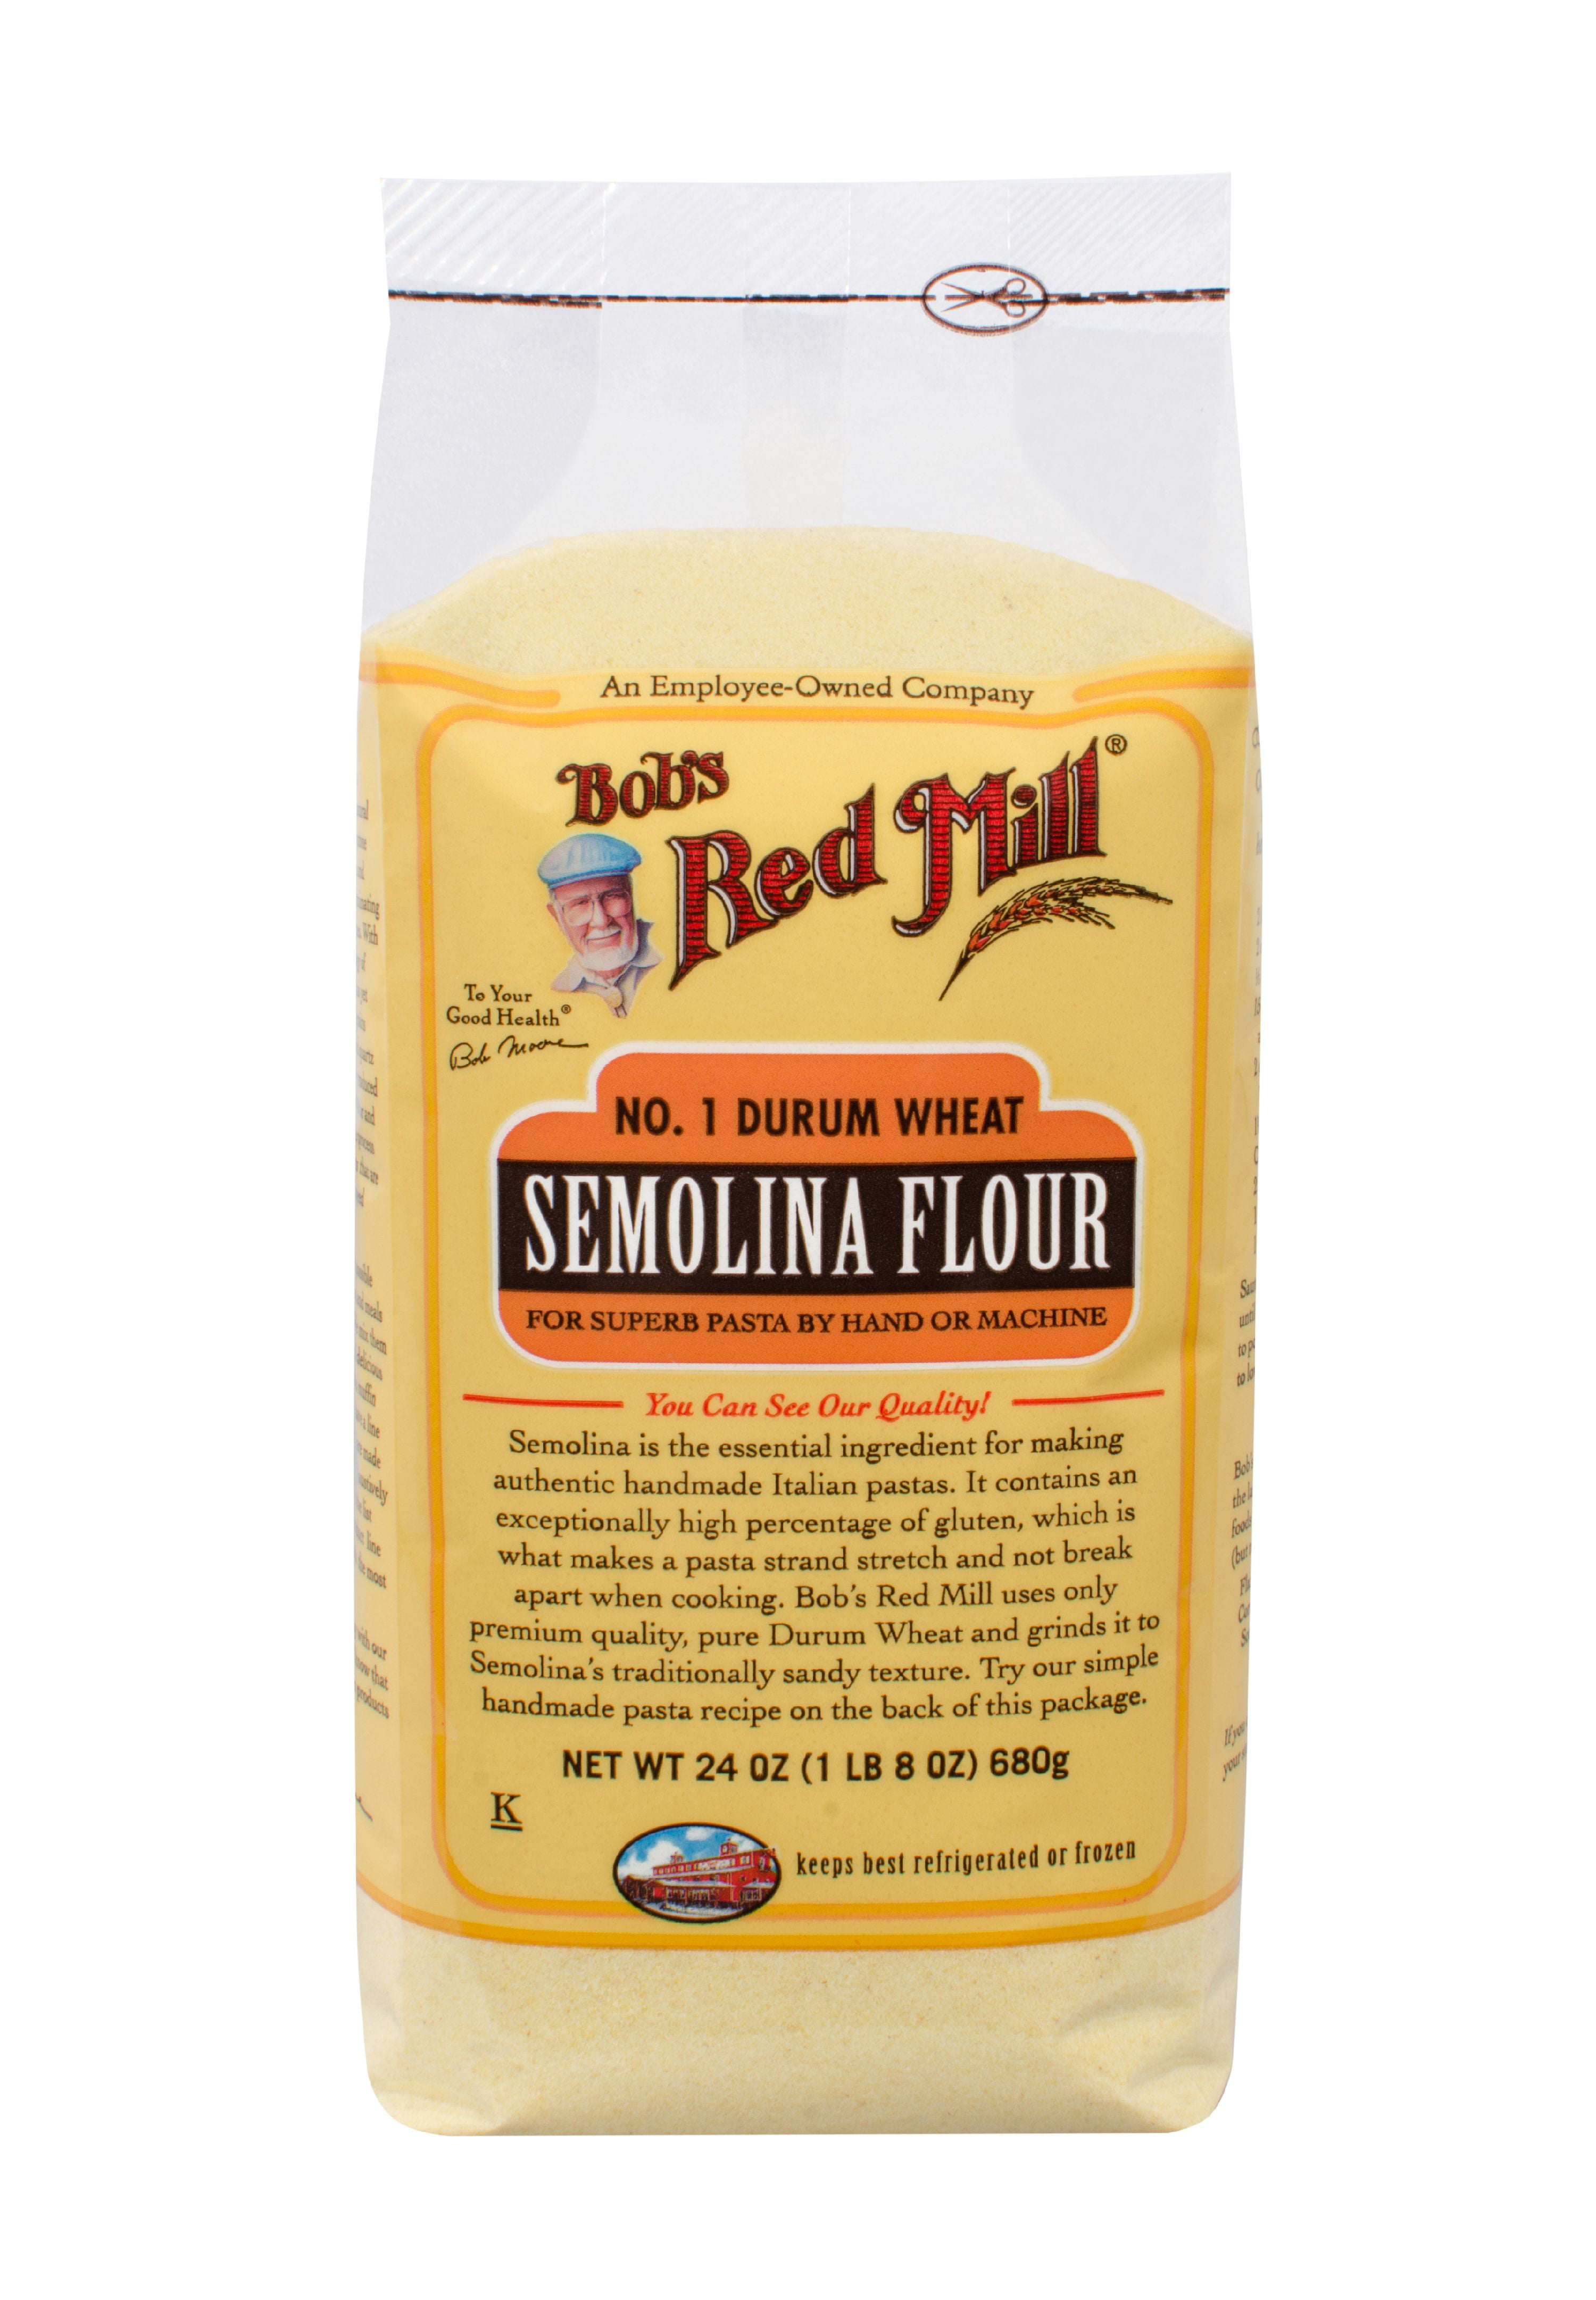 Bobs Red Mill No. 1 Durum Wheat Semolina Flour, 24 oz by Bob'S Red Mill